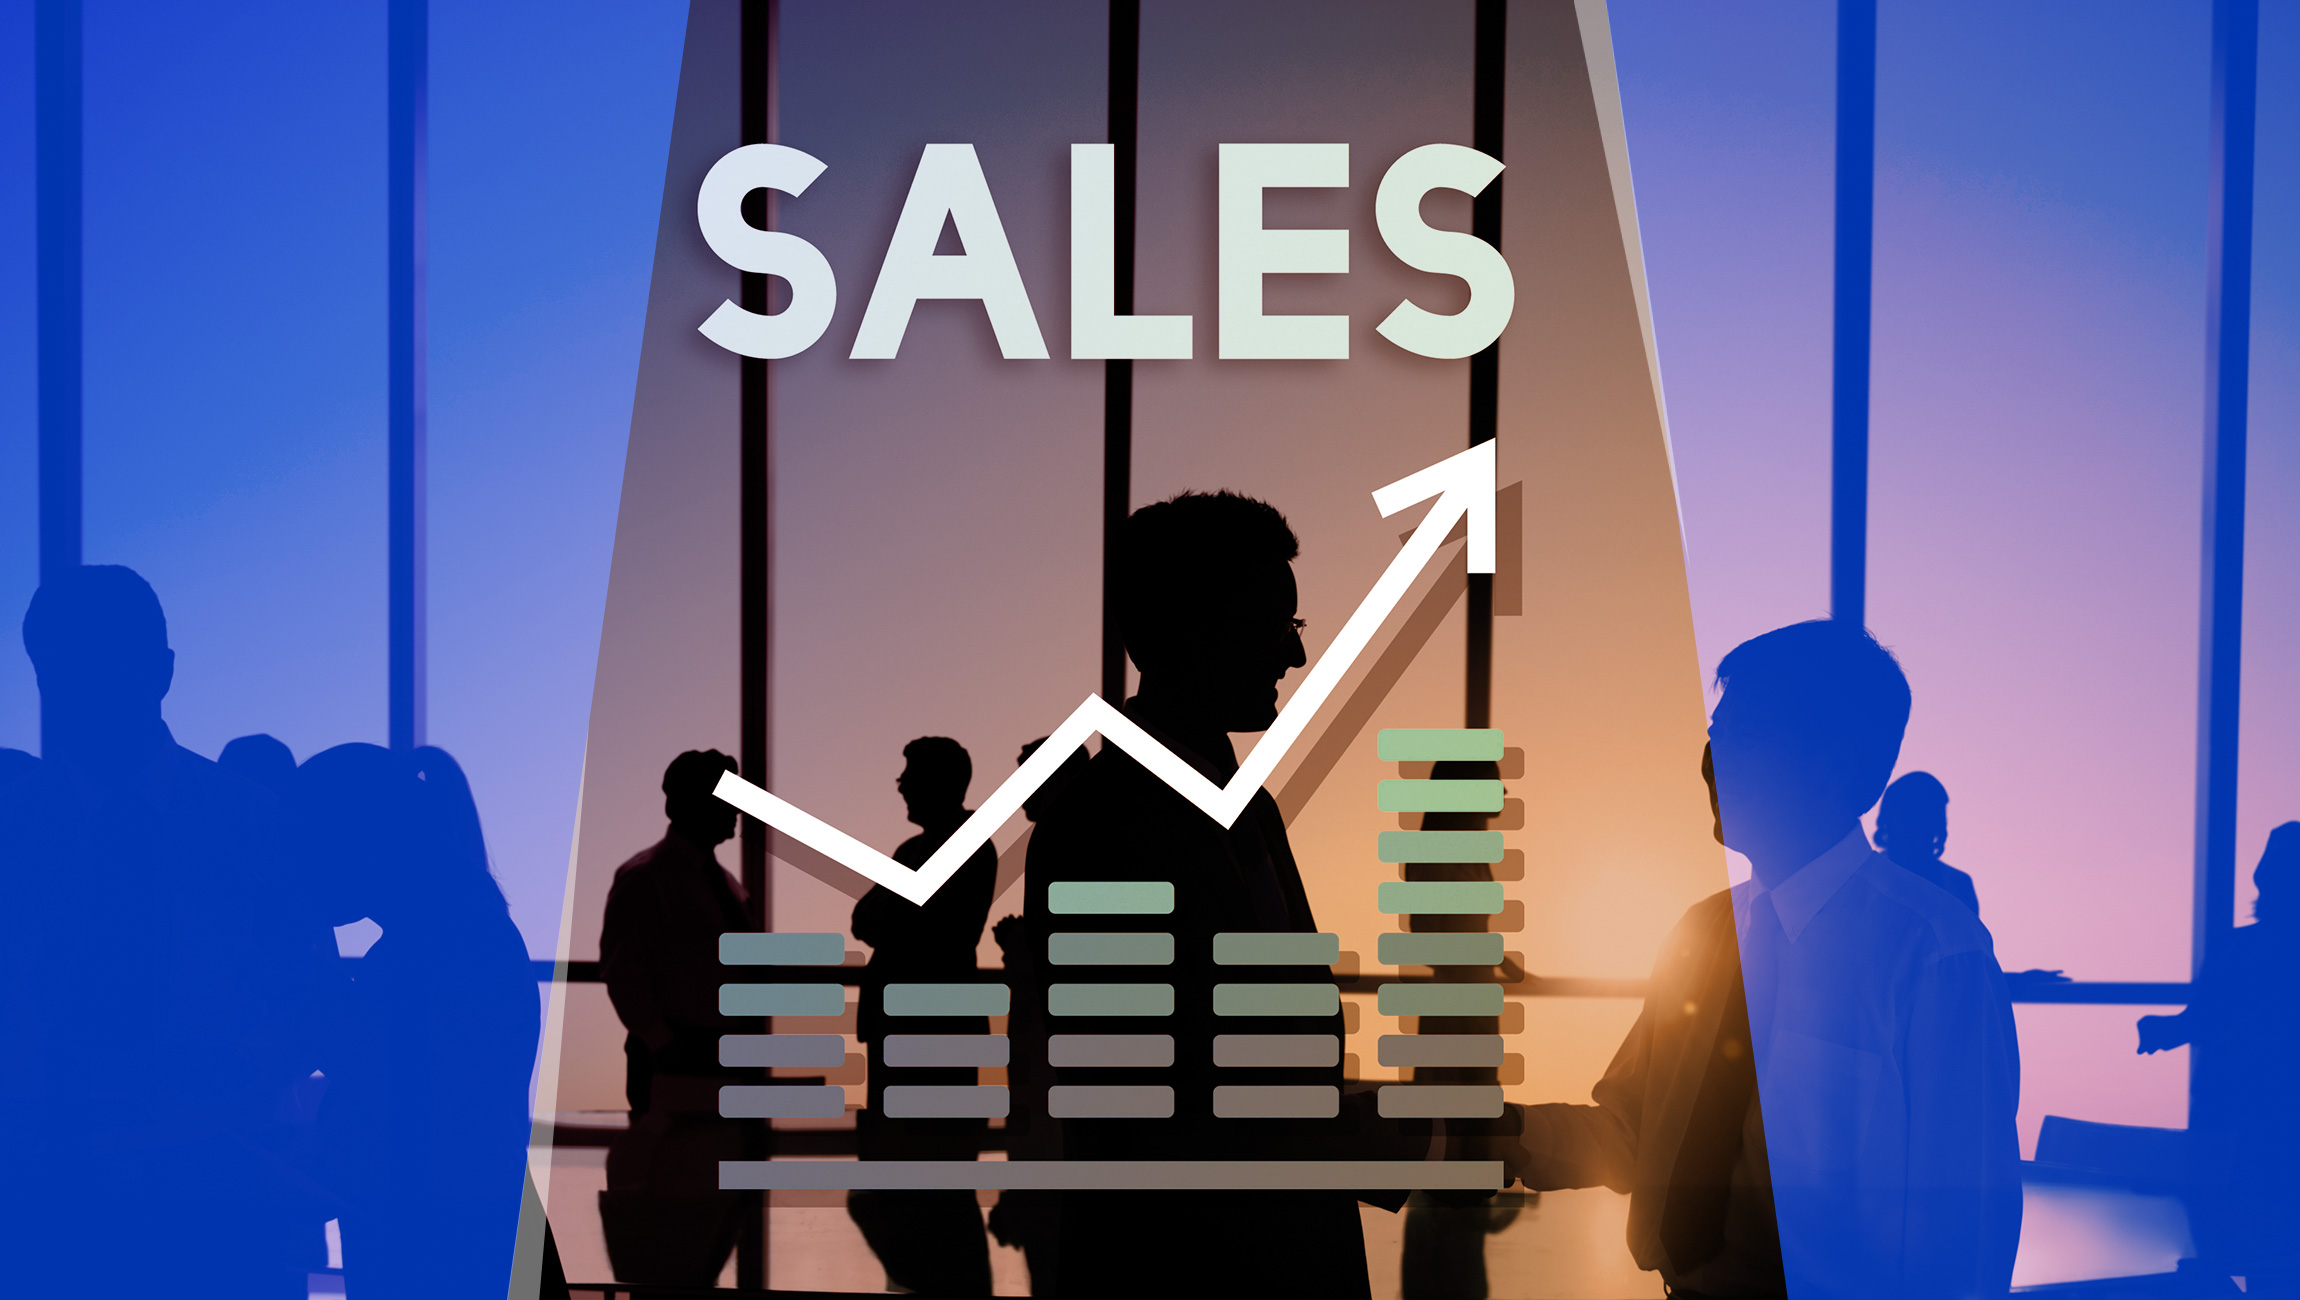 LEARNING ABOUT SALES IN A FREIGHT FORWARDER NETWORK